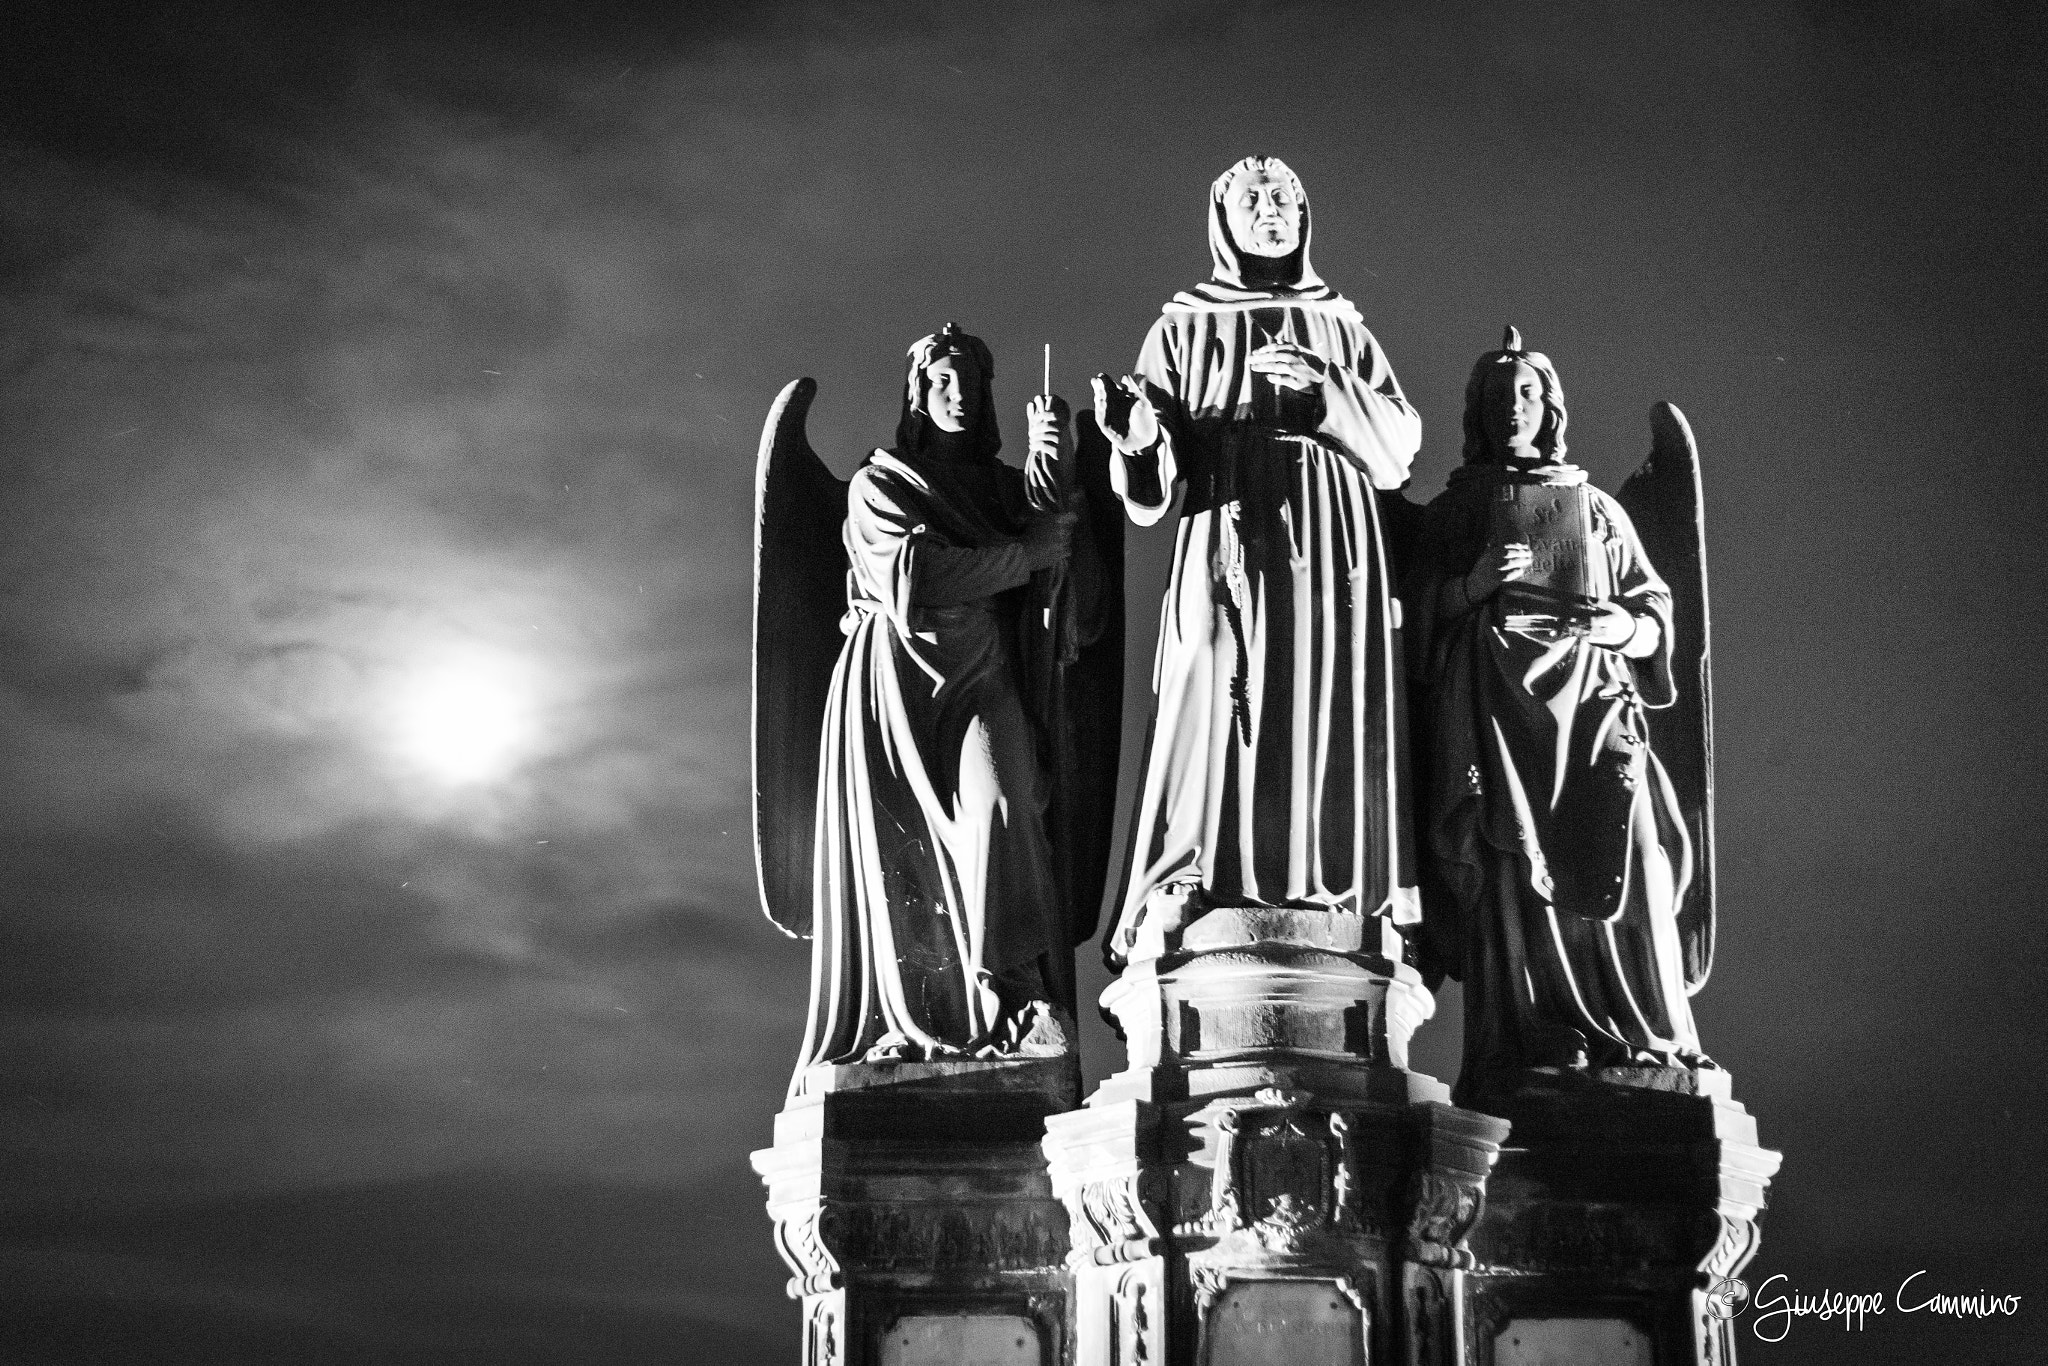 Photograph Statues and the moon by Giuseppe Cammino on 500px